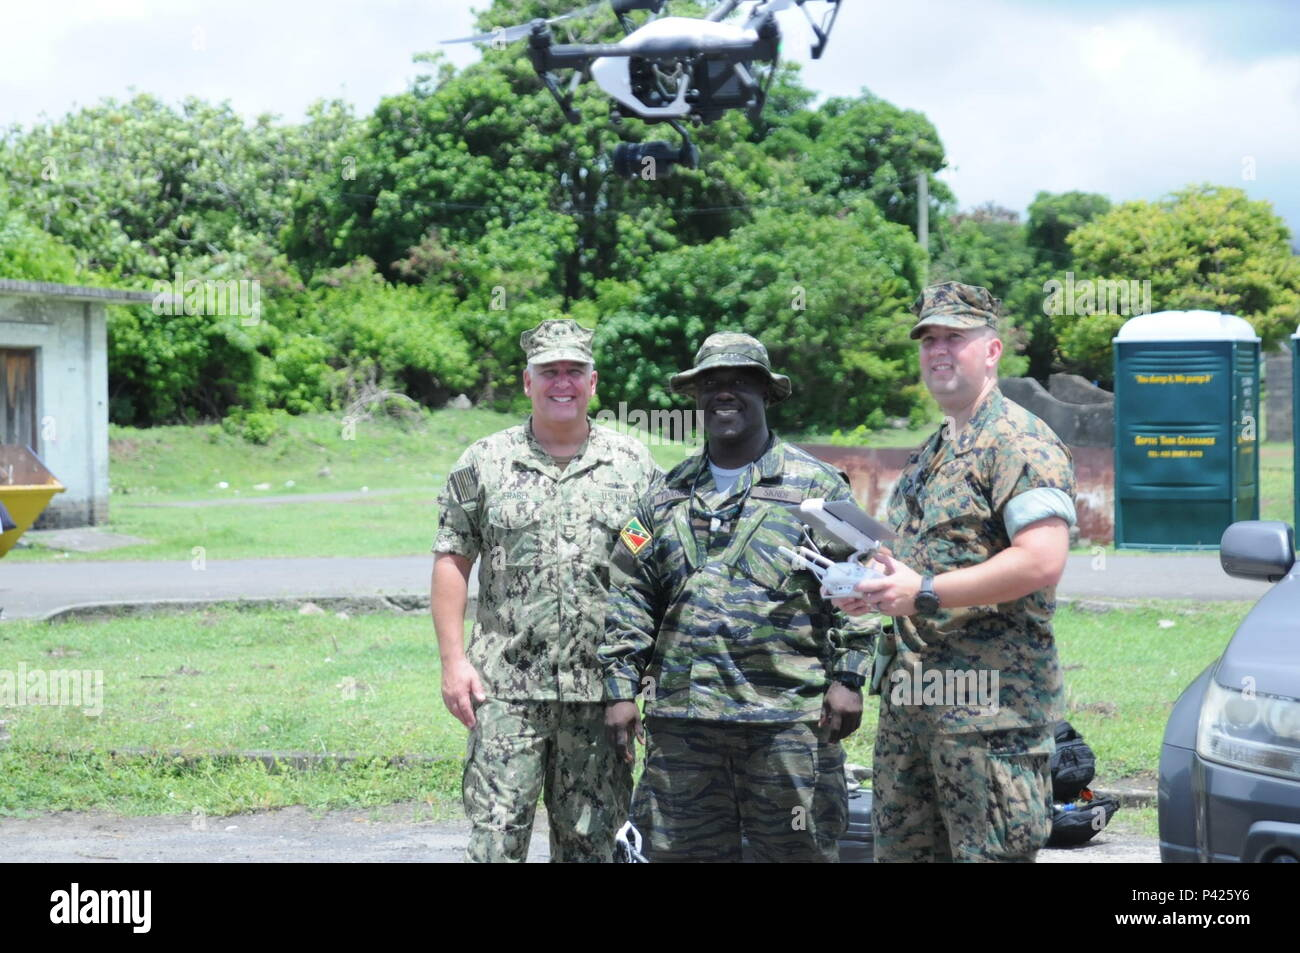 1st Lt. Regiwell Franics (middle), of the Saint Kitts and Nevis Defense Force, shows off his drone to Rear Adm. Scott Jerabek (far left) and Maj. Bryant Pater at Pearls Airport in Grenada, June 7, 2016. Francis is using his drone to provide aerial footage of exercises during Tradewinds Phase I Field Exercise held from June 05-14 in Grenada. Tradewinds 2016 is a joint combined exercise conducted in conjunction with partner nations to enhance the collective abilities of defense forces and constabularies to counter transnational organized crime and to conduct humanitarian/disaster relief operatio - Stock Image